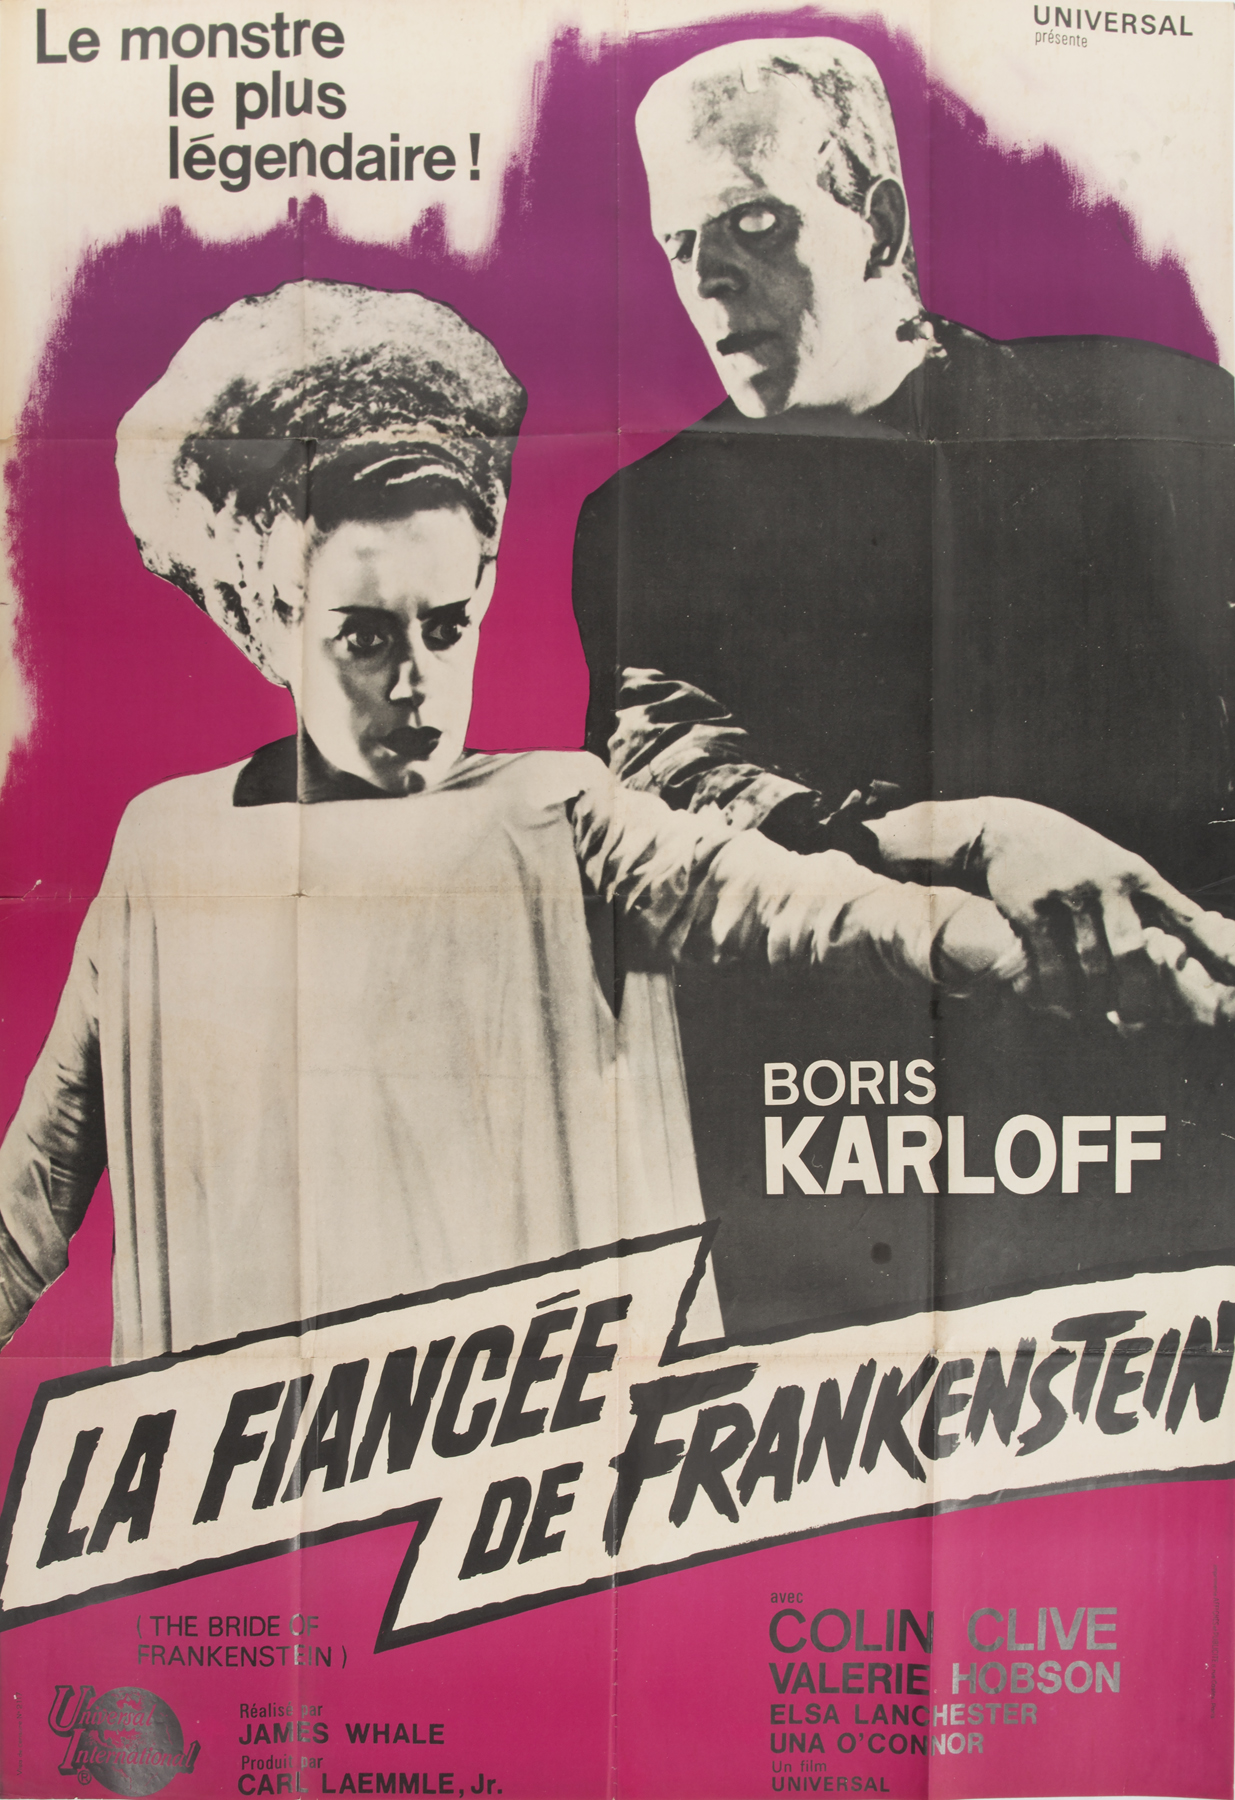 A French poster for the 1964 re-release of the 1935 classic horror movie Bride of Frankenstein